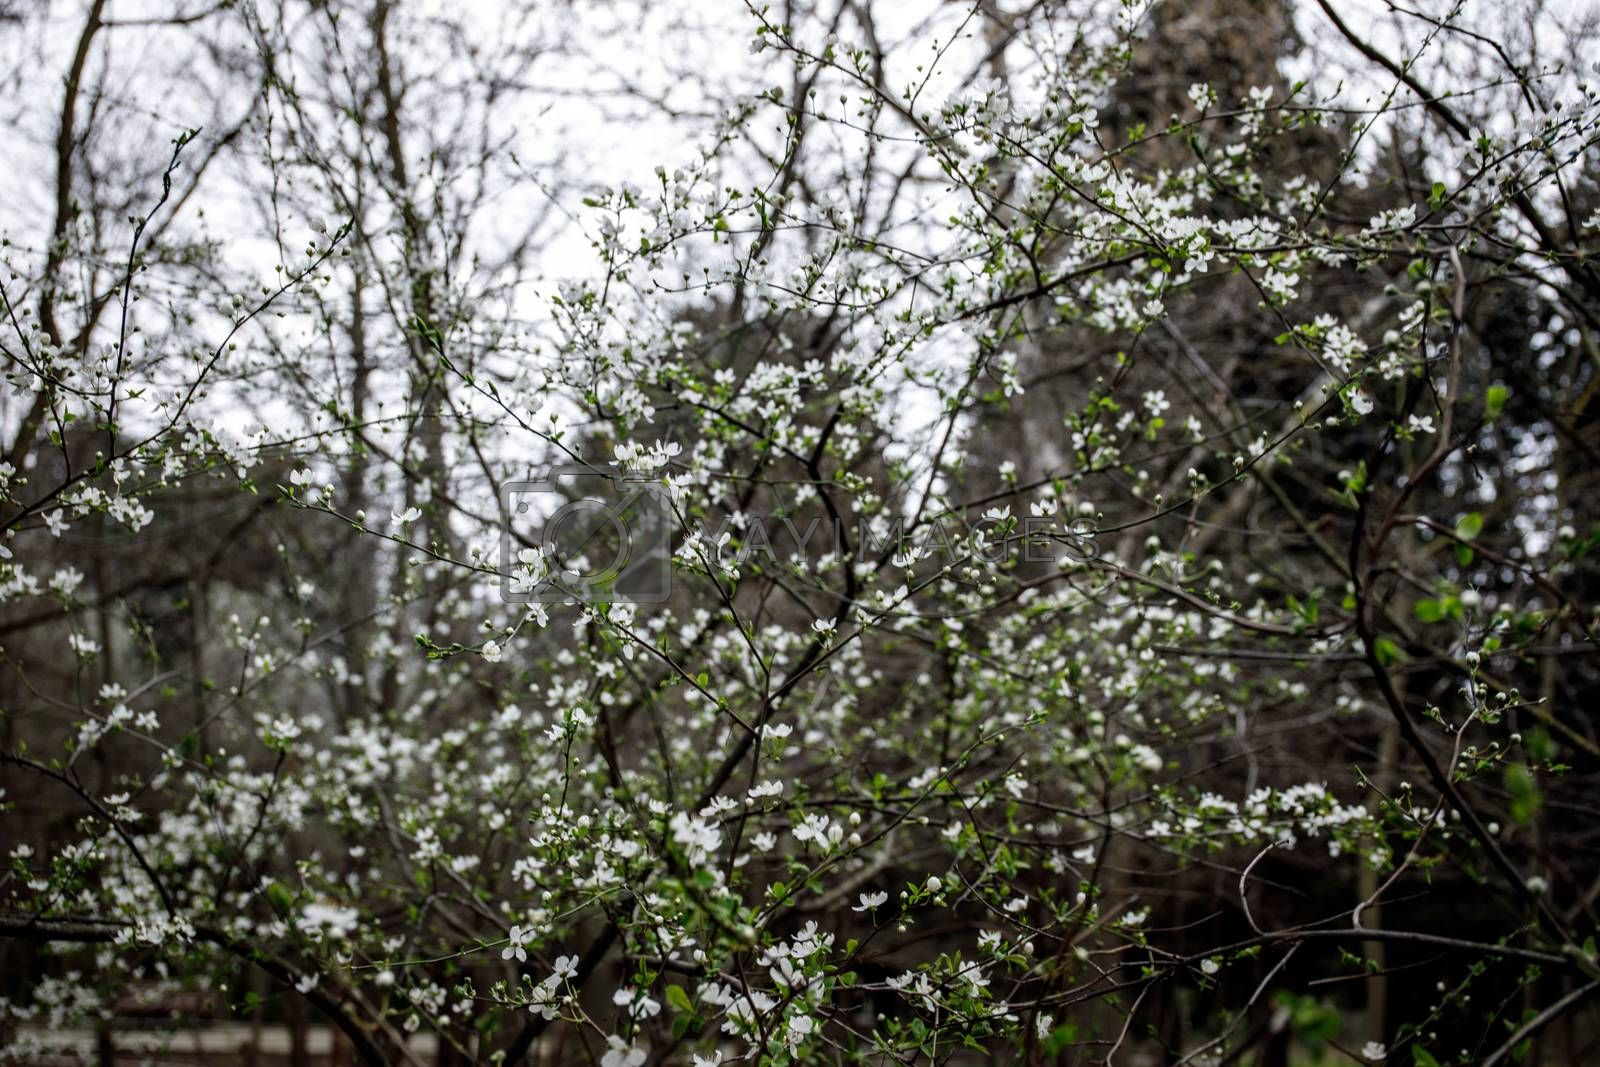 White small flowers on tree in spring time. closeup image. Selective focus